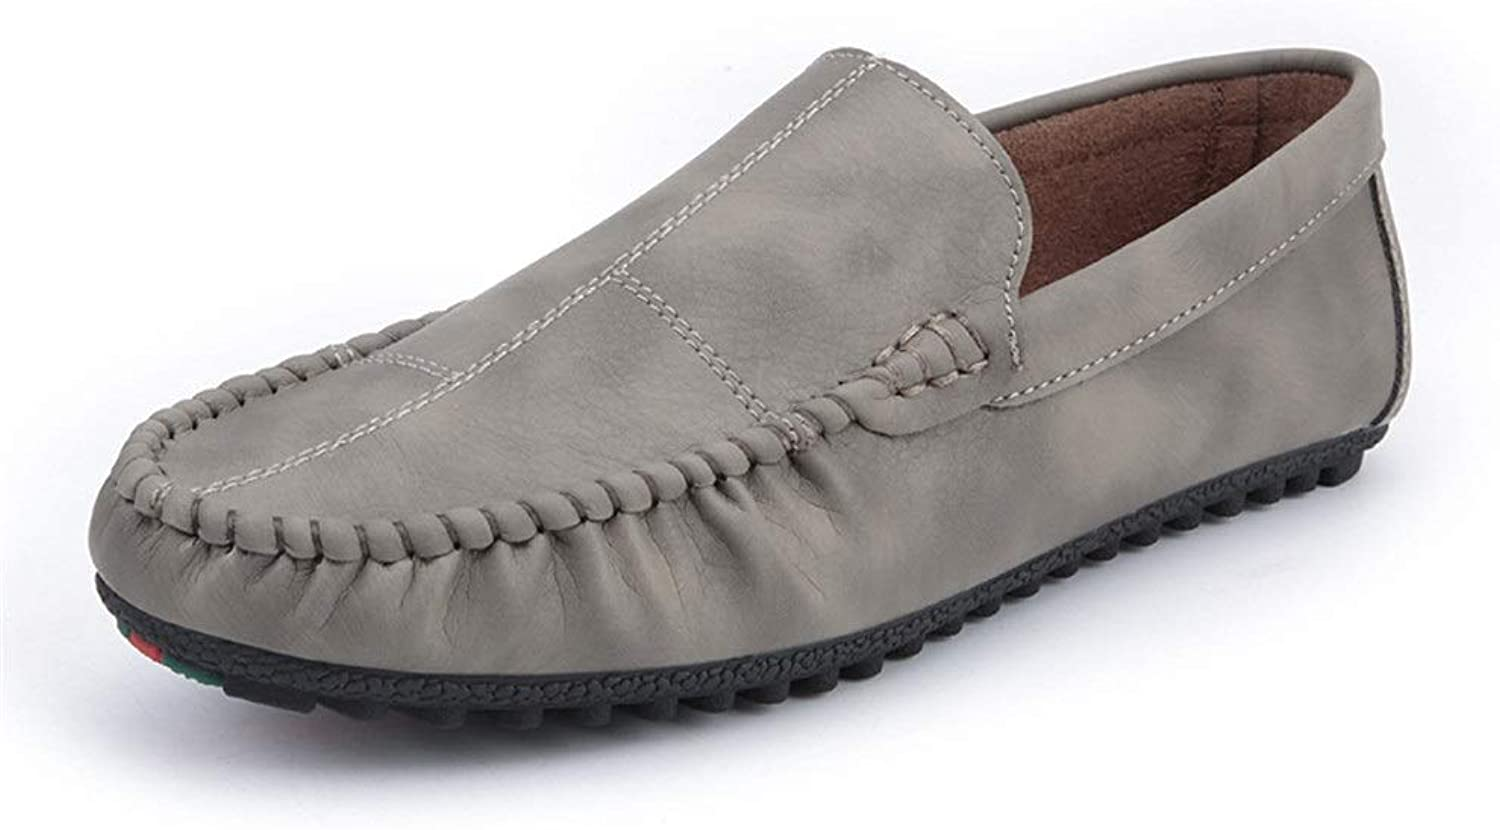 SRY-Fashion shoes Men's Casual shoes Leisure Drive Loafers for Men Round Toe Oxfords Casual Walking Level Penny shoes PU Stitch Breathable Lightweight